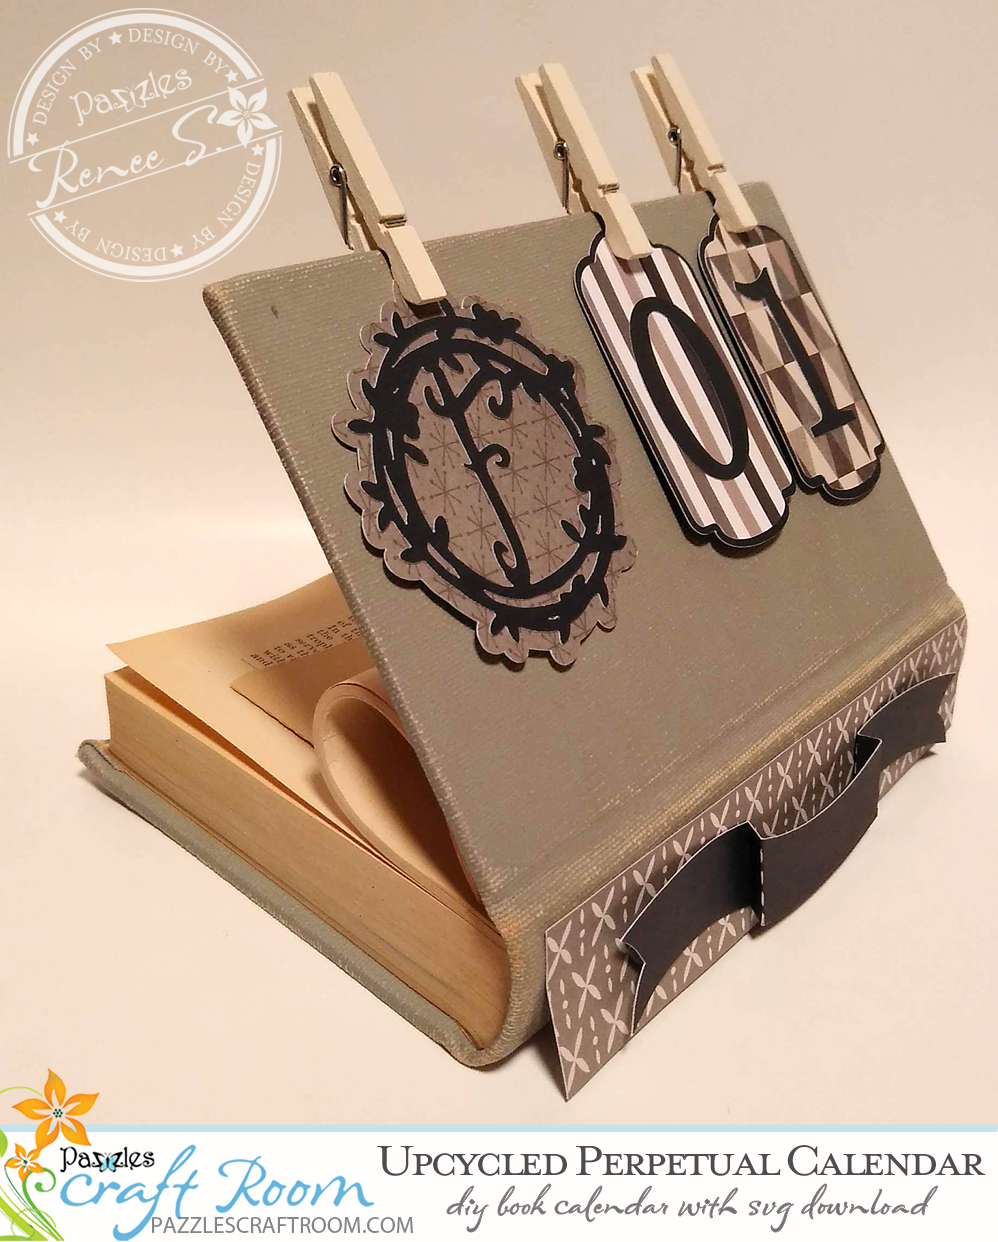 Pazzles DIY Upcycled Book Perpetual Calendar with instant SVG download. Compatible with all major electronic cutters including Pazzles Inspiration, Cricut, and Silhouette Cameo. Design by Renee Smart.